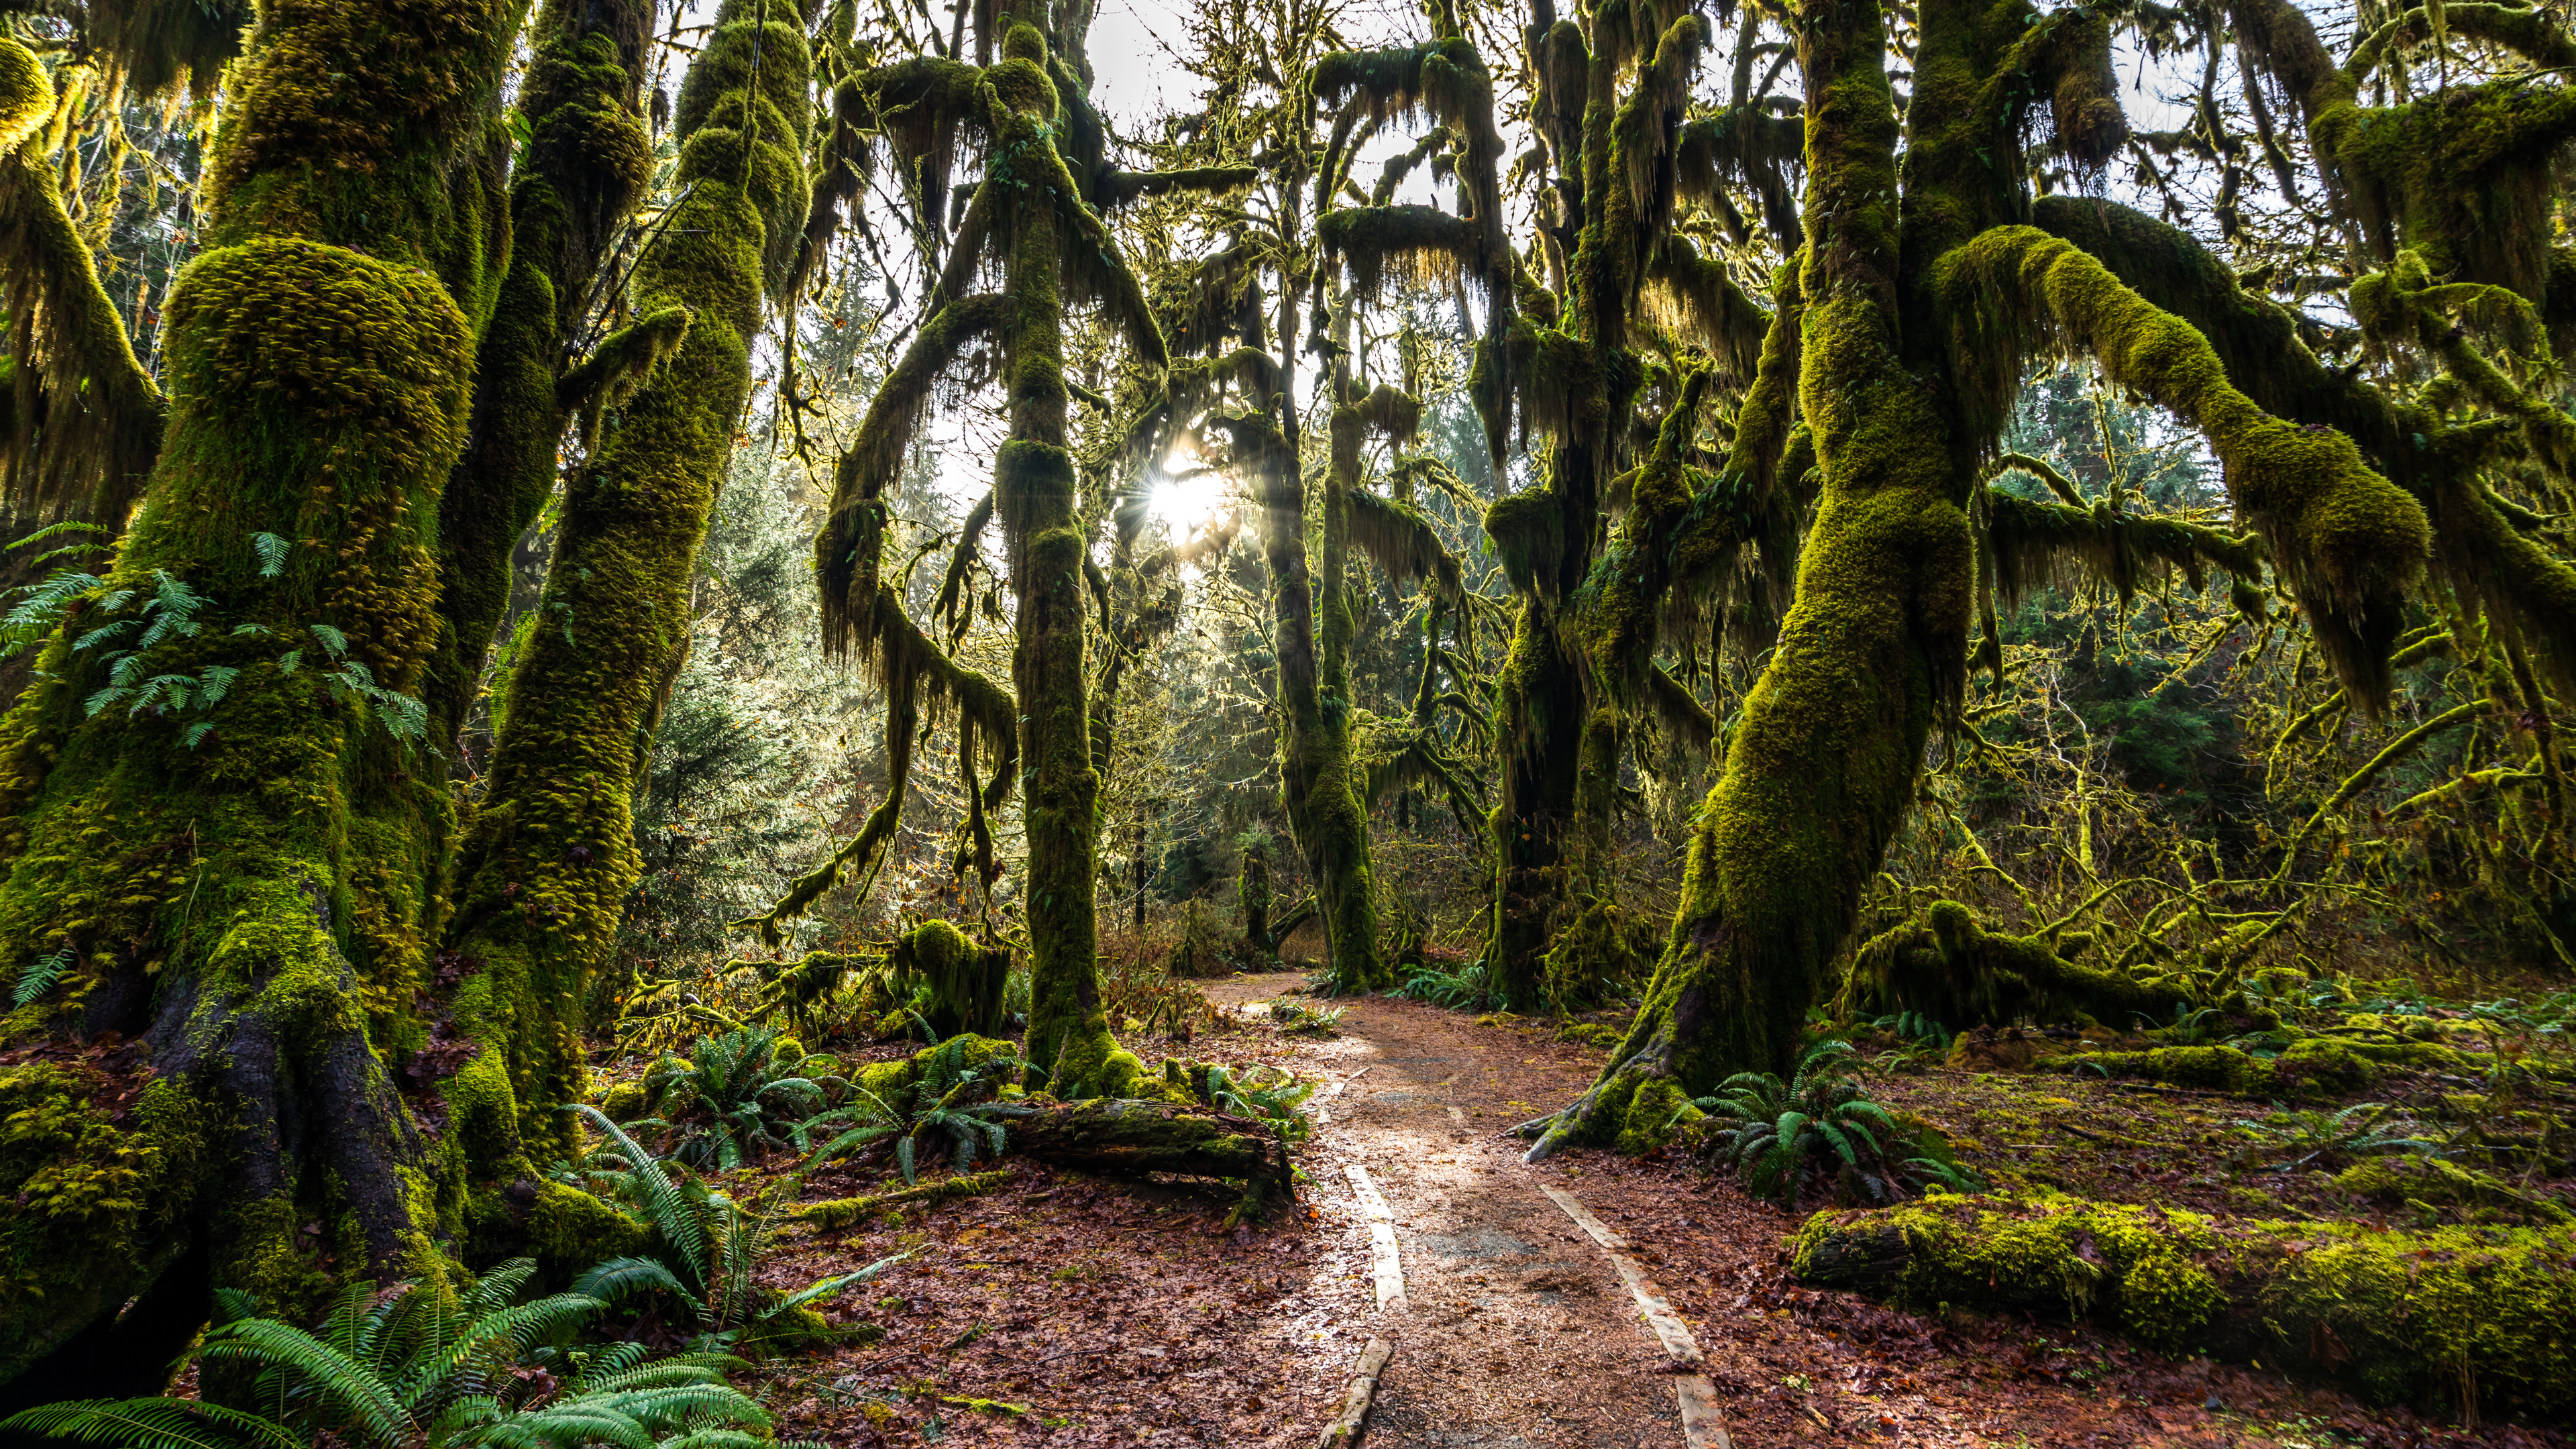 4k Hd Nature Relaxation Video Hoh Rain Forest Part 1 1